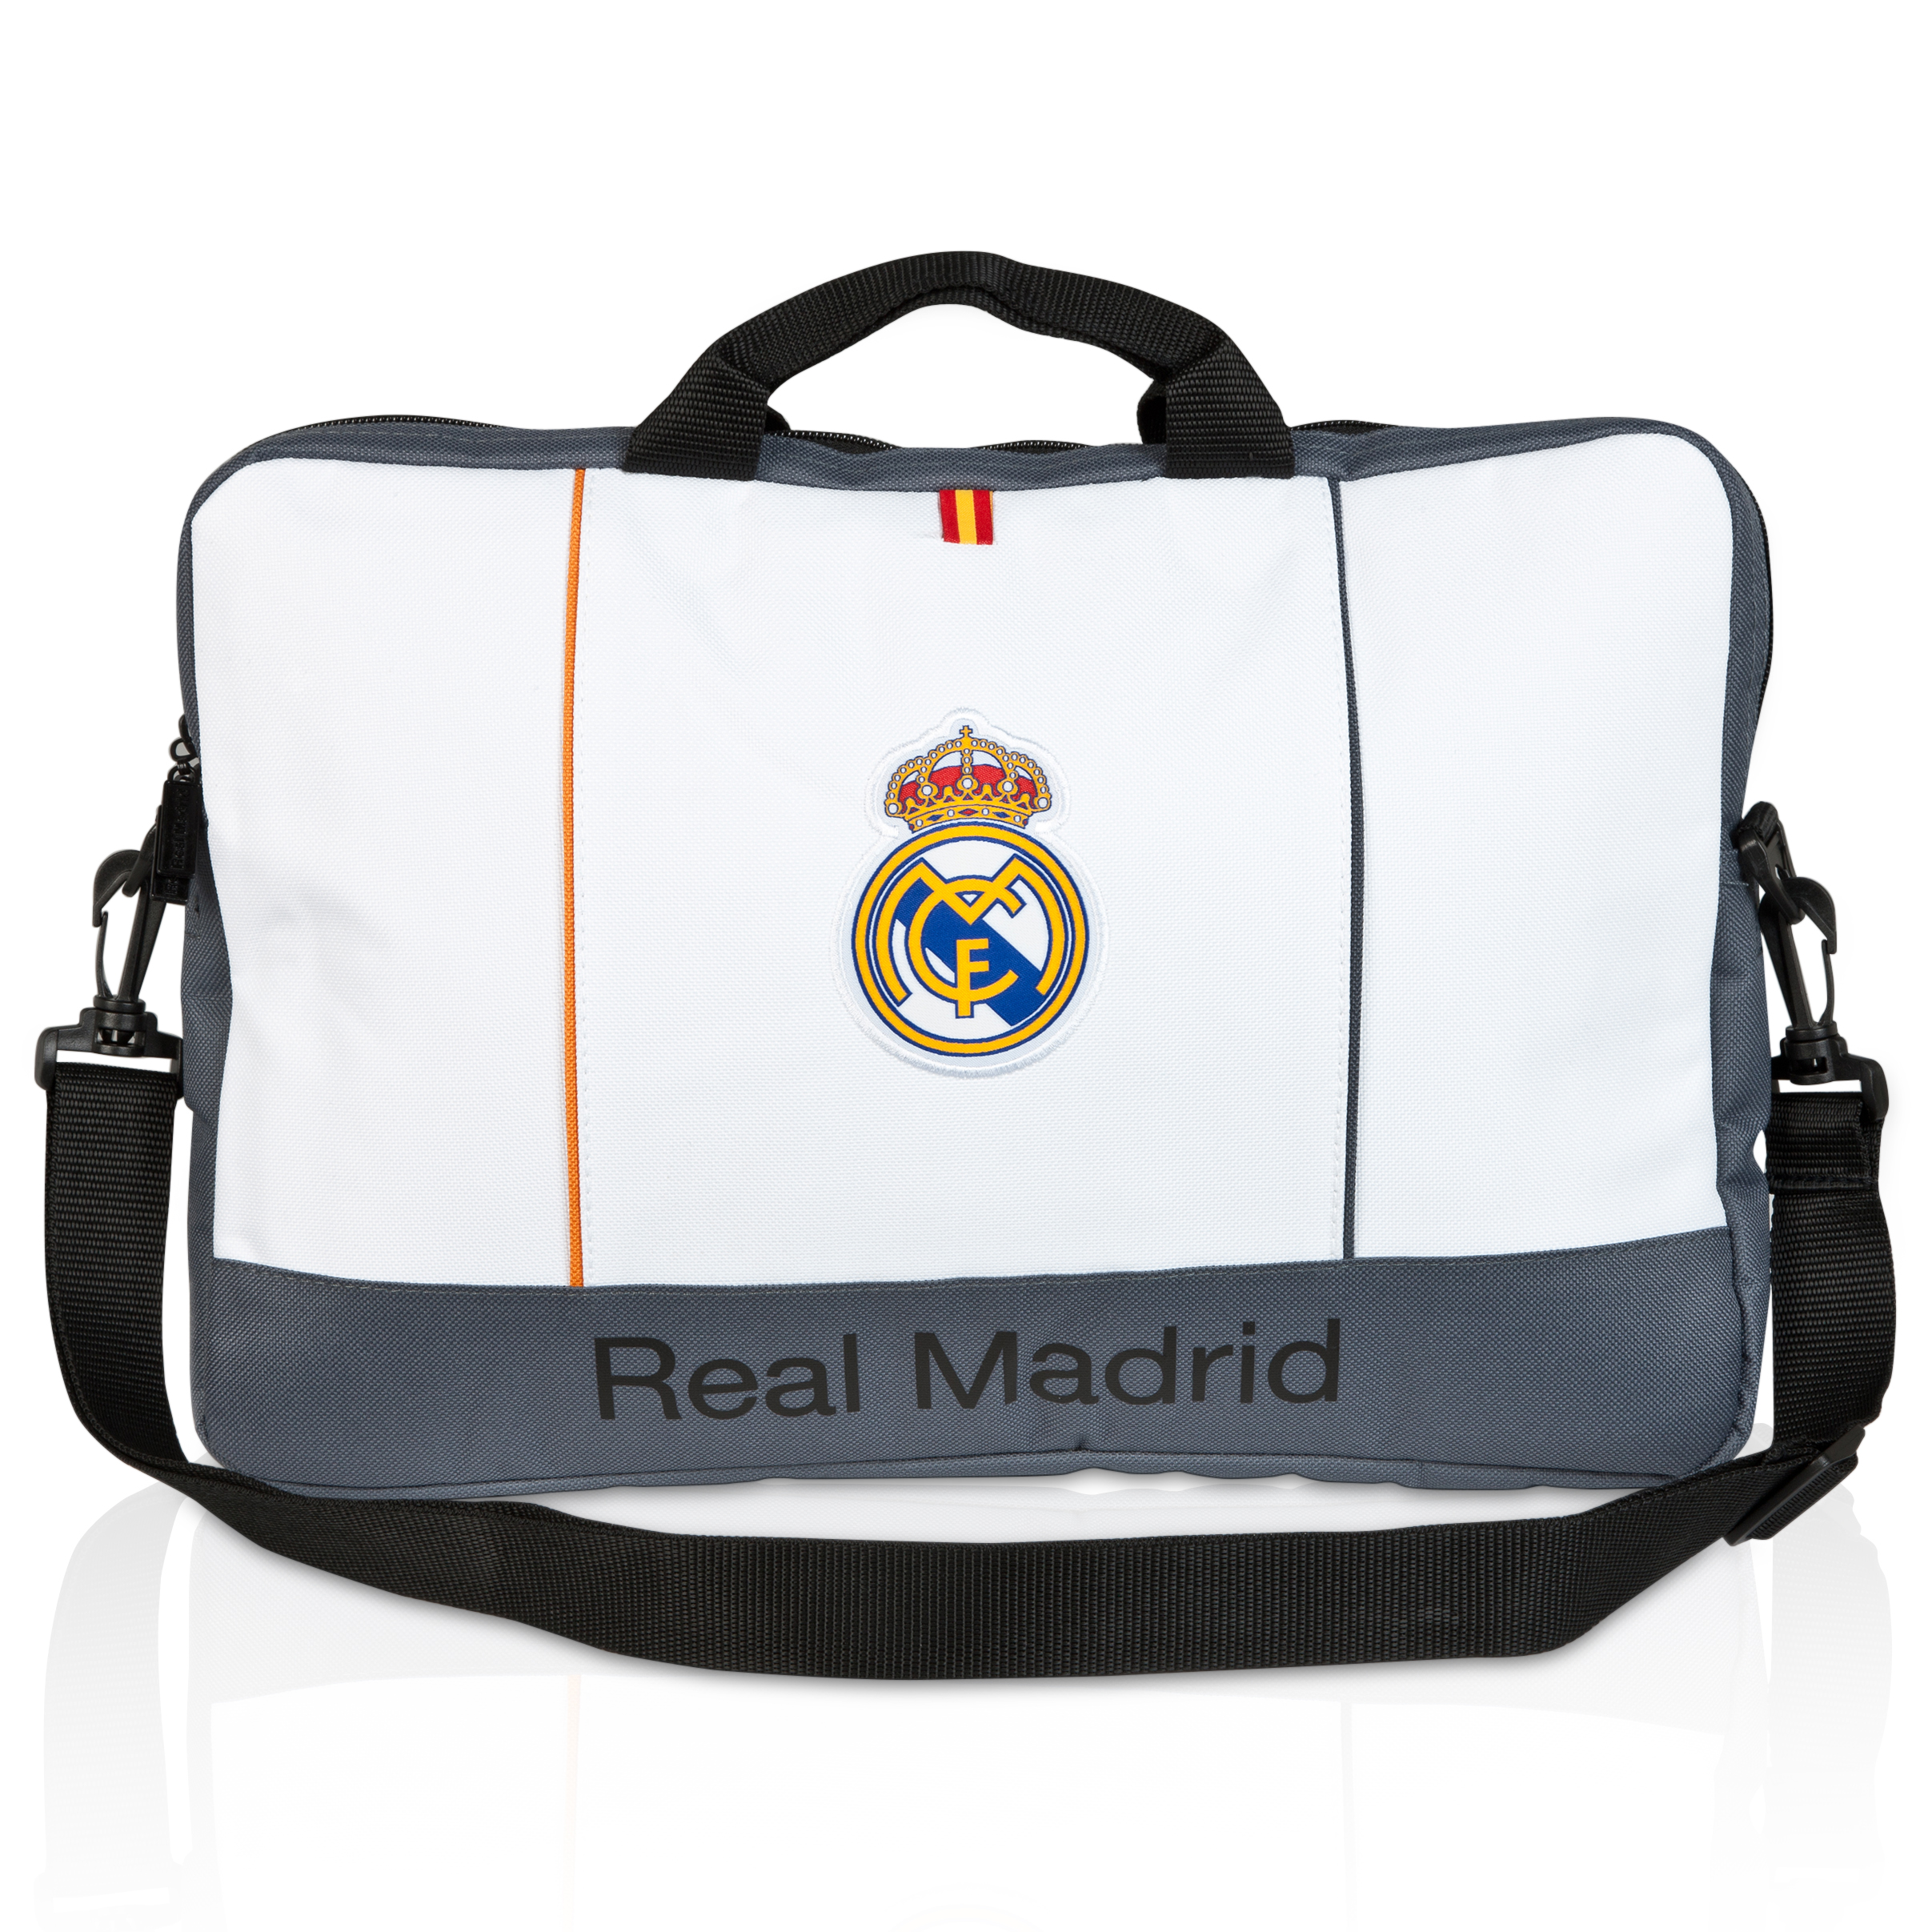 Real Madrid Shoulder Laptop Bag - 15.6 Inch - 400 x 270 x 40mm